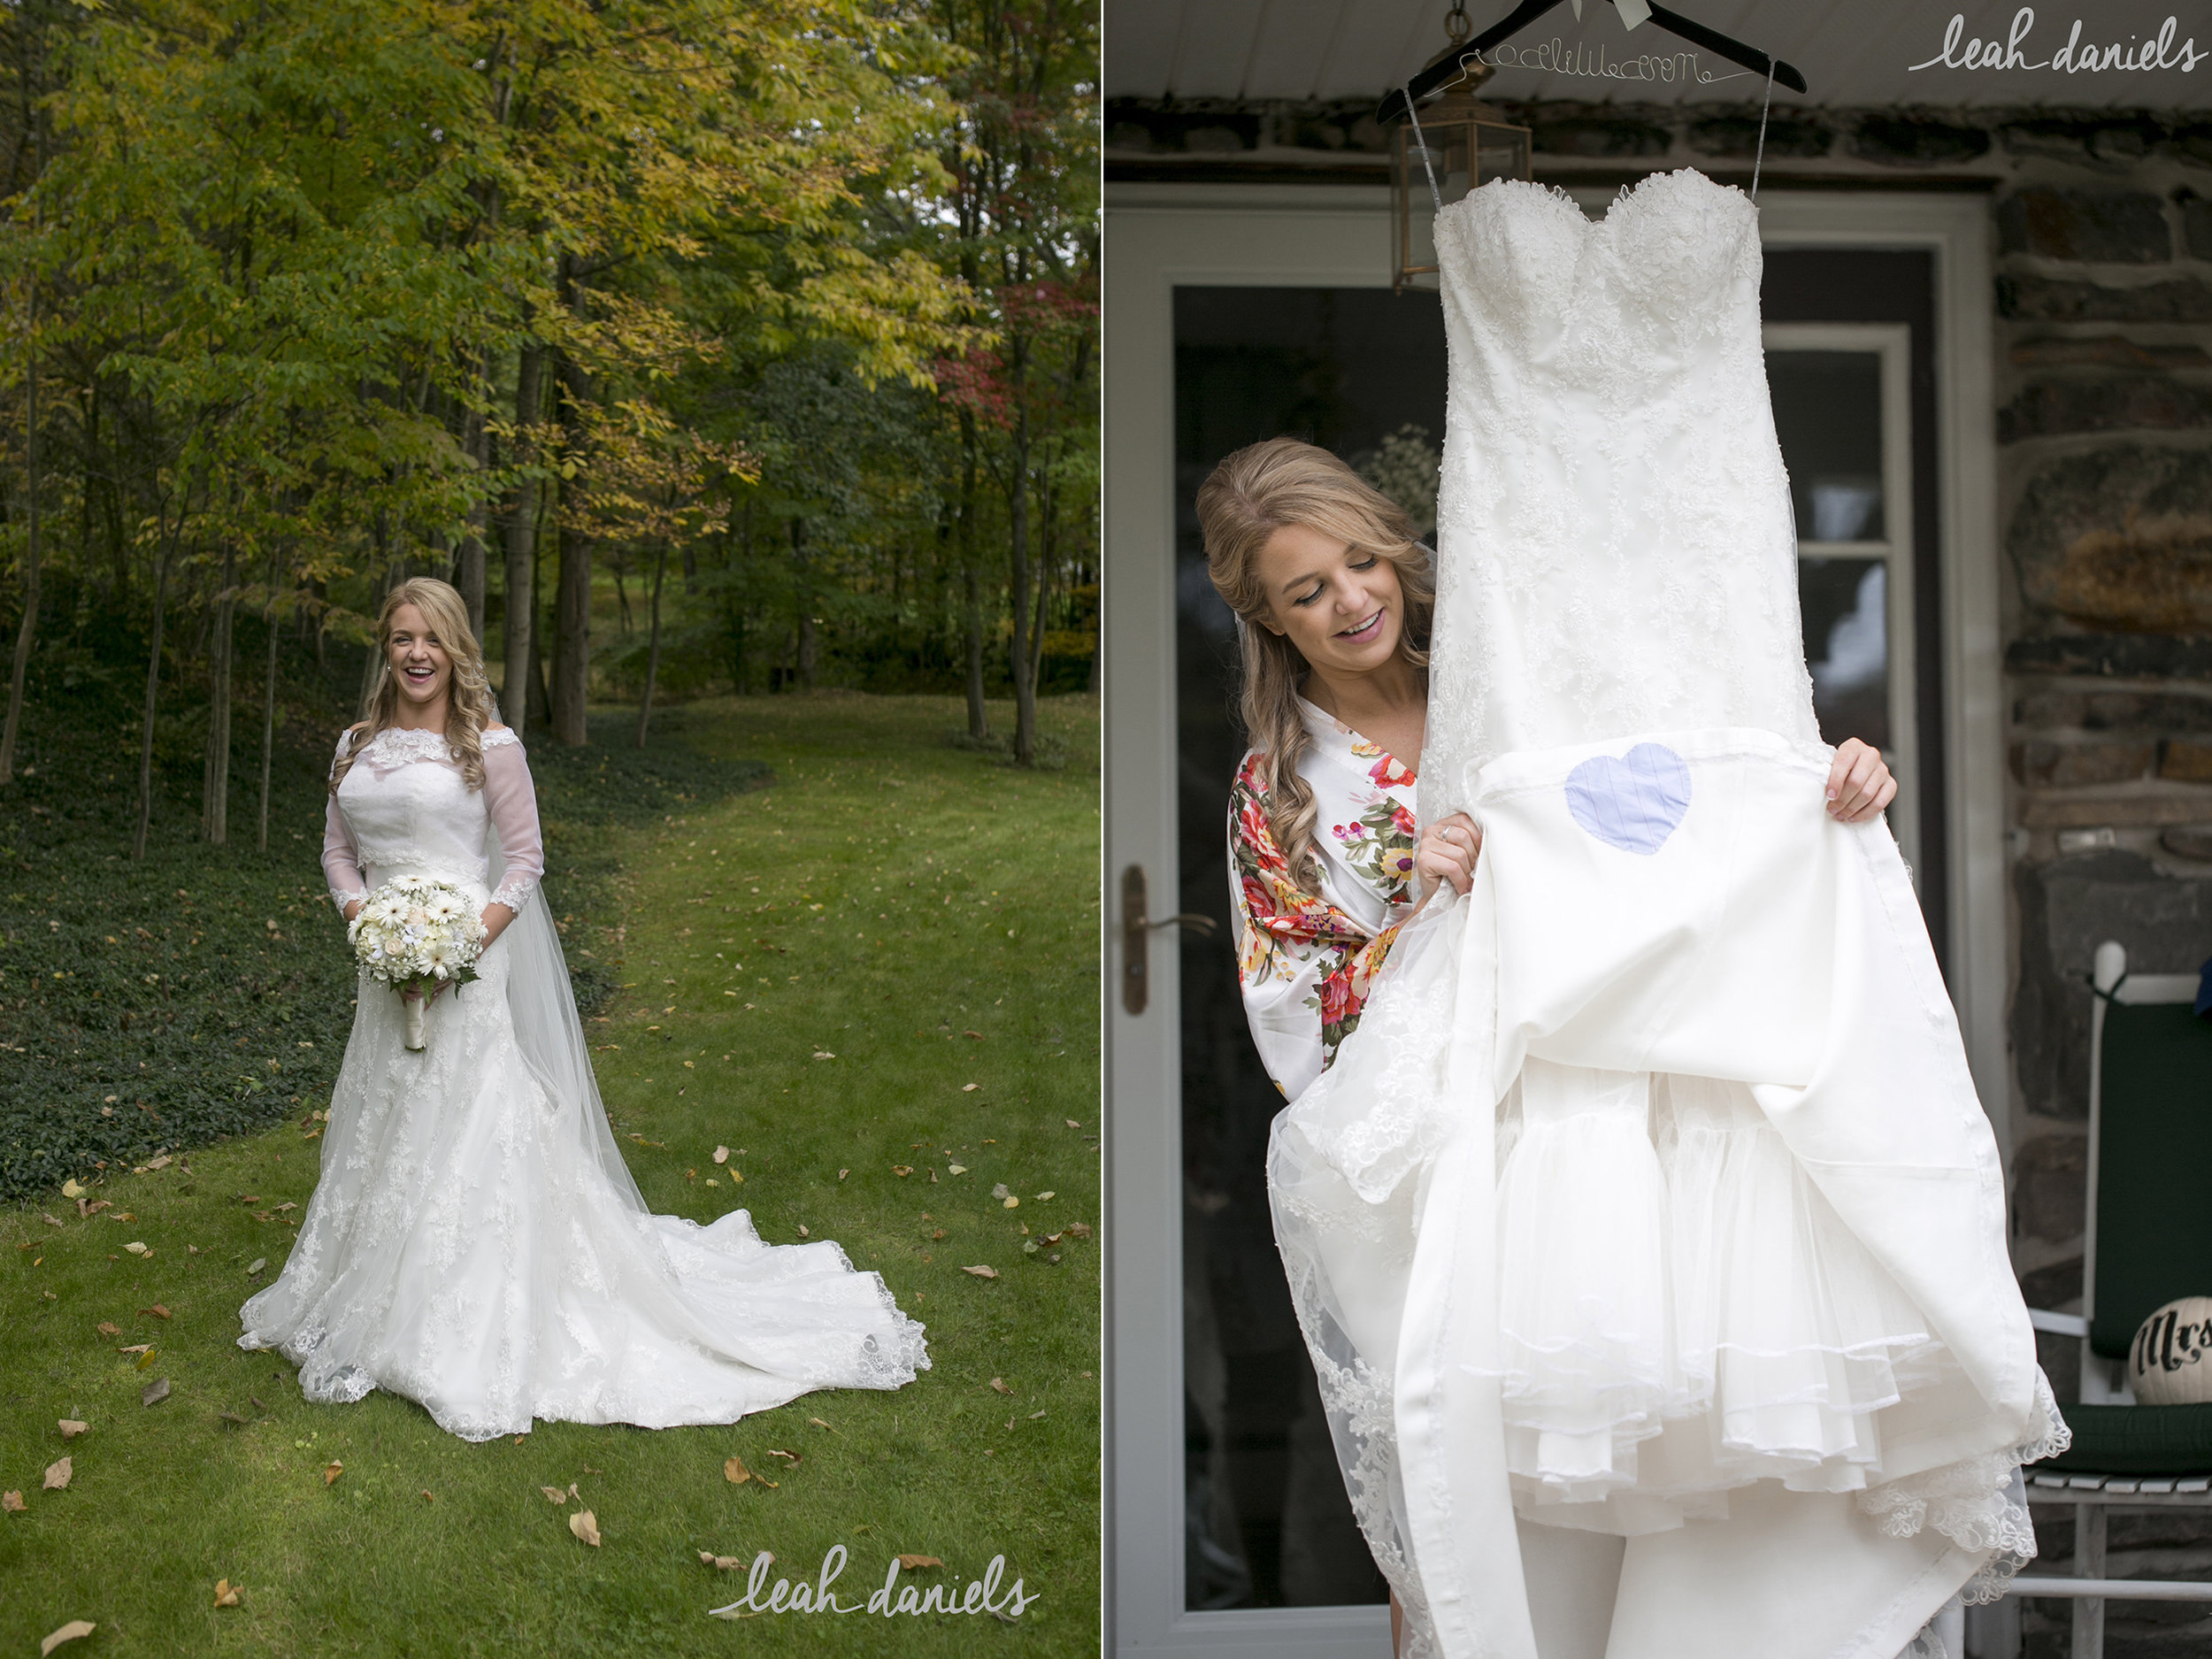 The face of pure joy on your wedding day!